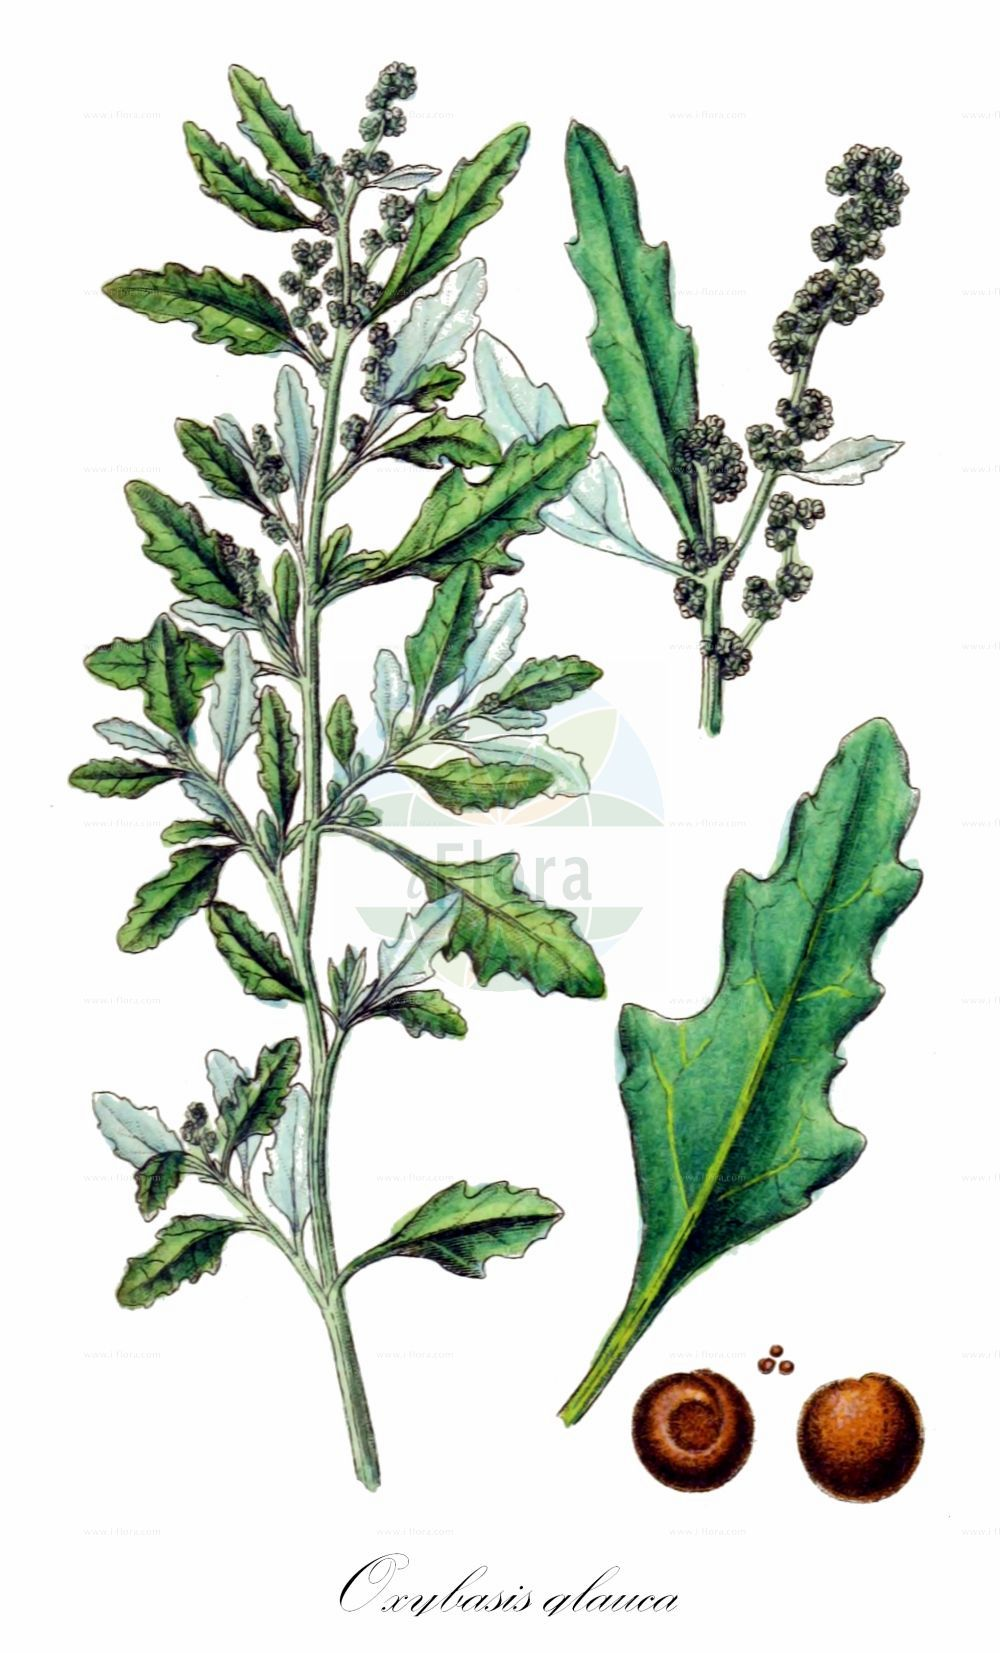 Historische Abbildung von Oxybasis glauca (Graugruener Gaensefuss - Oak-leaved Goosefoot). Das Bild zeigt Blatt, Bluete, Frucht und Same. ---- Historical Drawing of Oxybasis glauca (Graugruener Gaensefuss - Oak-leaved Goosefoot).The image is showing leaf, flower, fruit and seed.(Oxybasis glauca,Graugruener Gaensefuss,Oak-leaved Goosefoot,Chenopodium glaucum,Chenopodium wolffii,,Grauer Gaensefuss,Glaucous Goosefoot,Oak-leaf Goosefoot,Oxybasis,Amaranthaceae,Fuchsschwanzgewaechse,Pigweed family,Blatt,Bluete,Frucht,Same,leaf,flower,fruit,seed,Sturm (1796f))